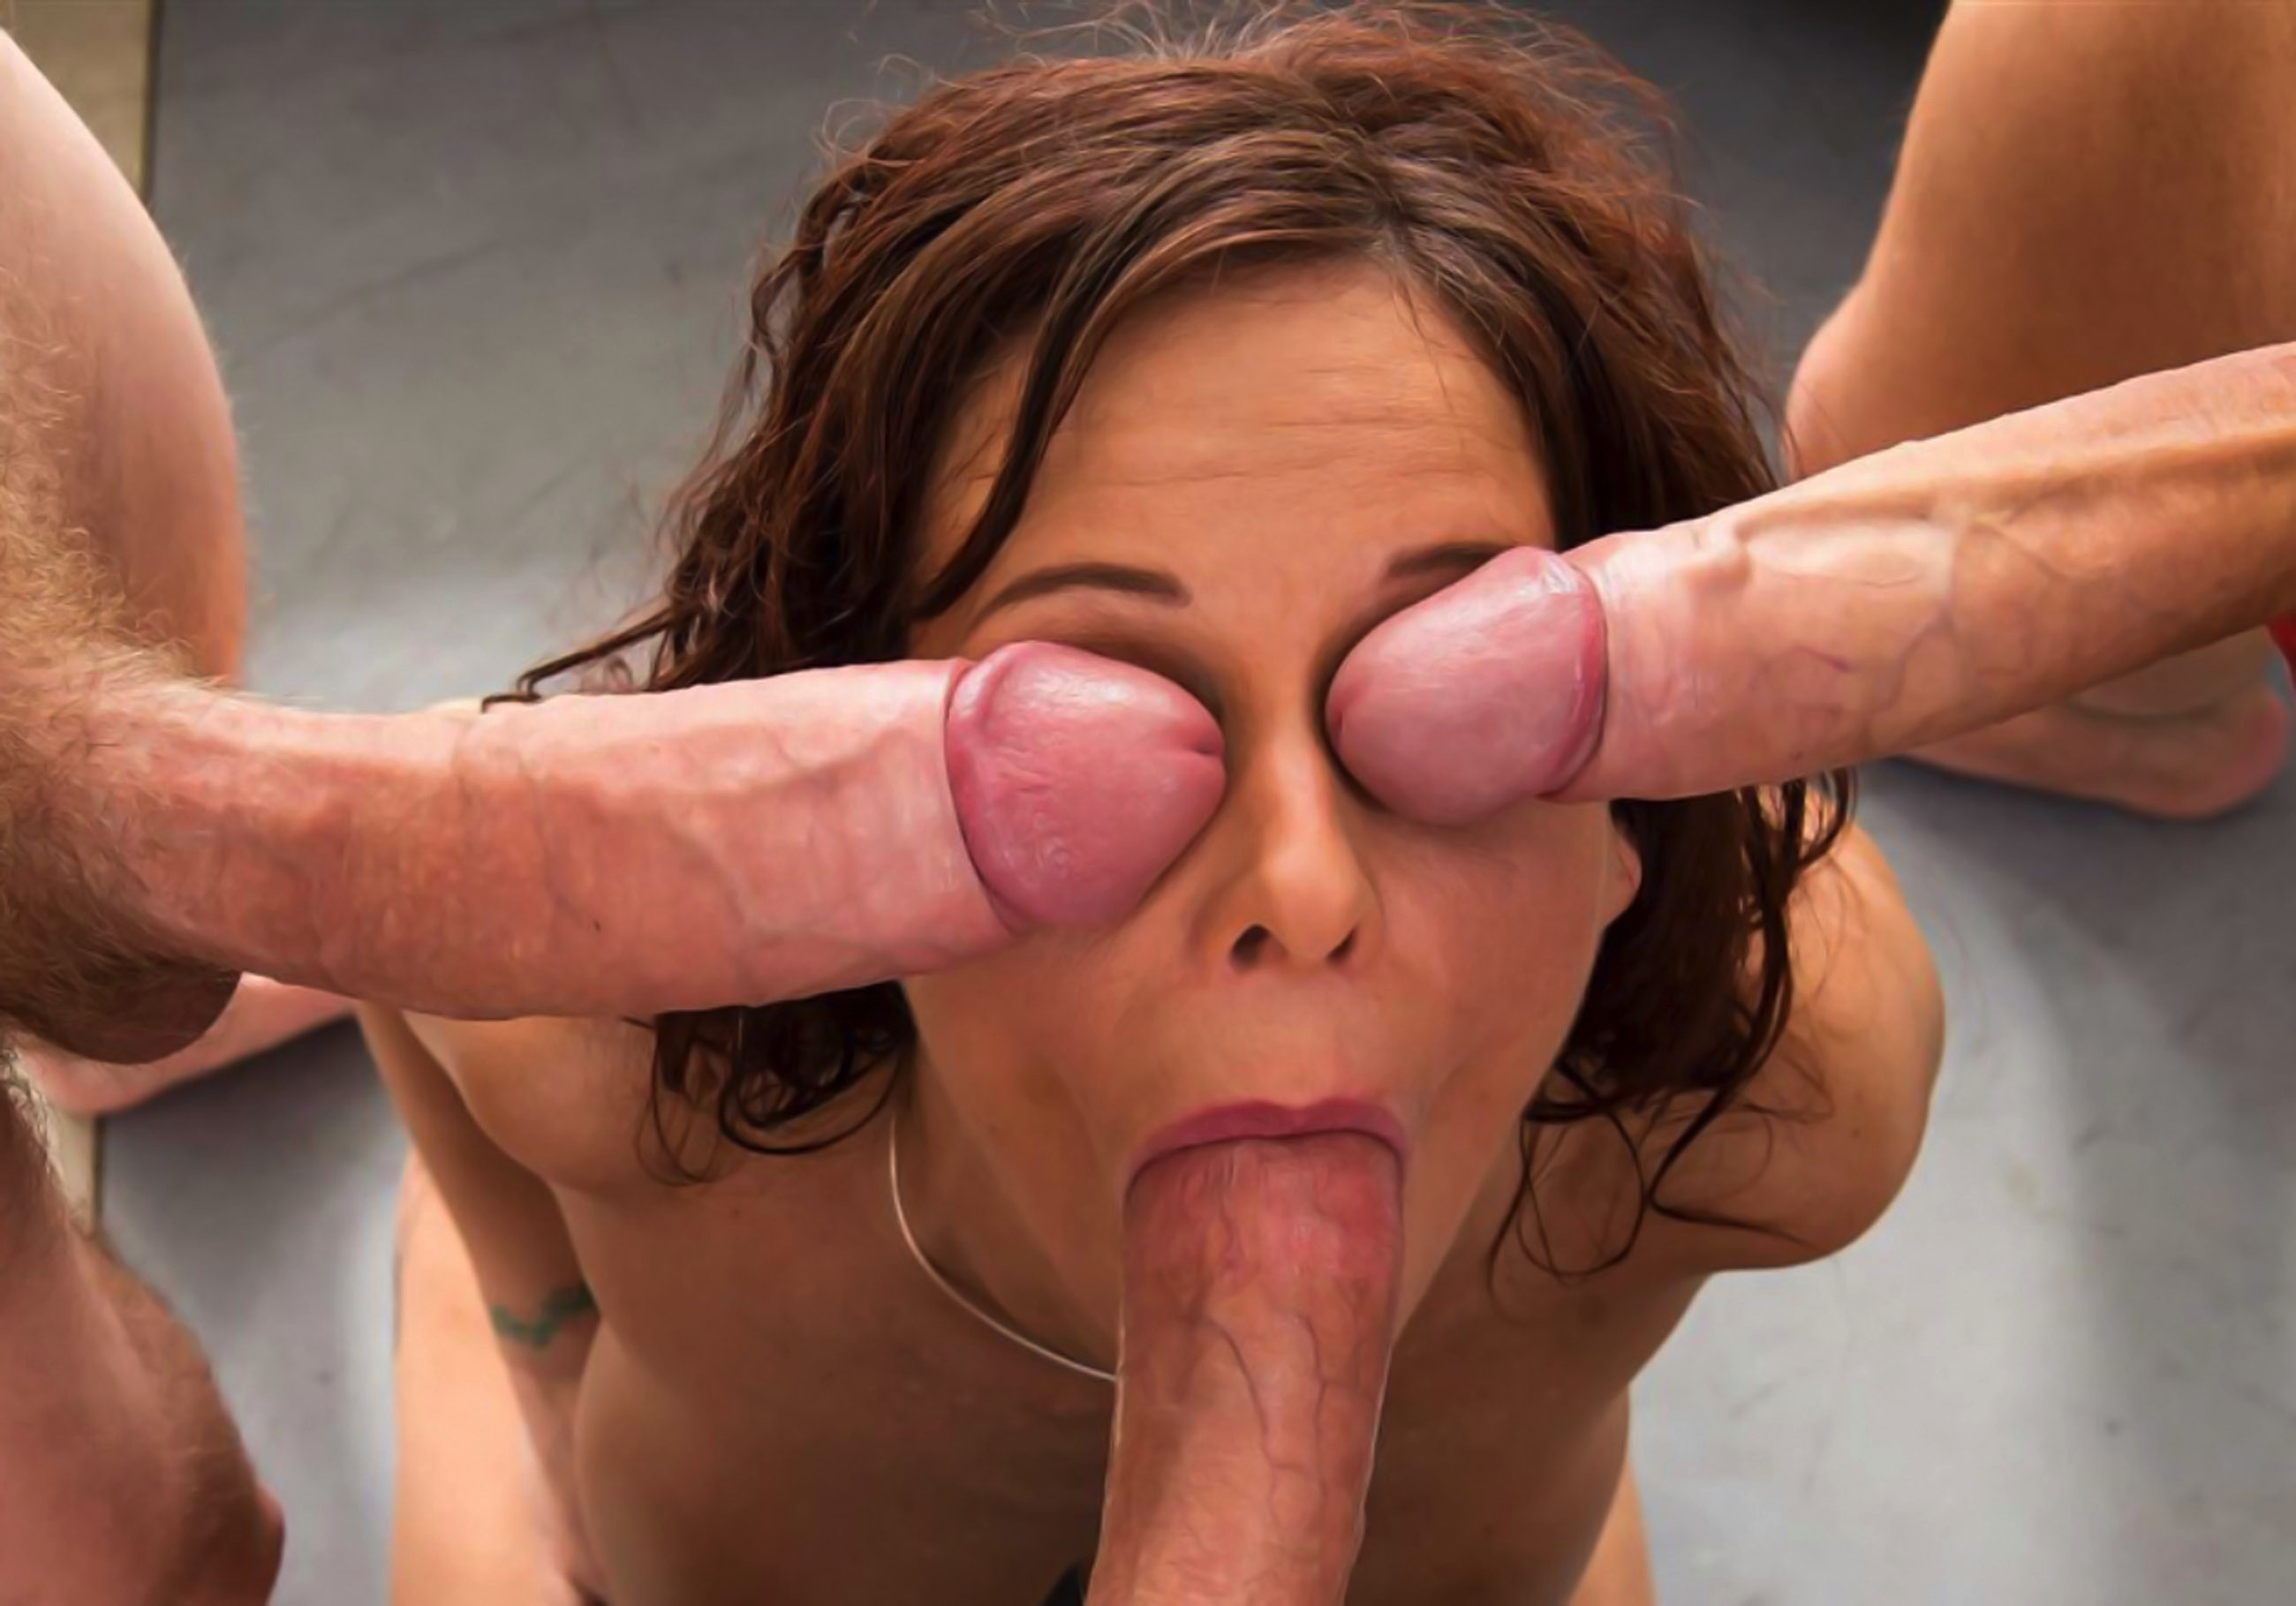 wallpaper handjob cocks oral joke dick cock schlong